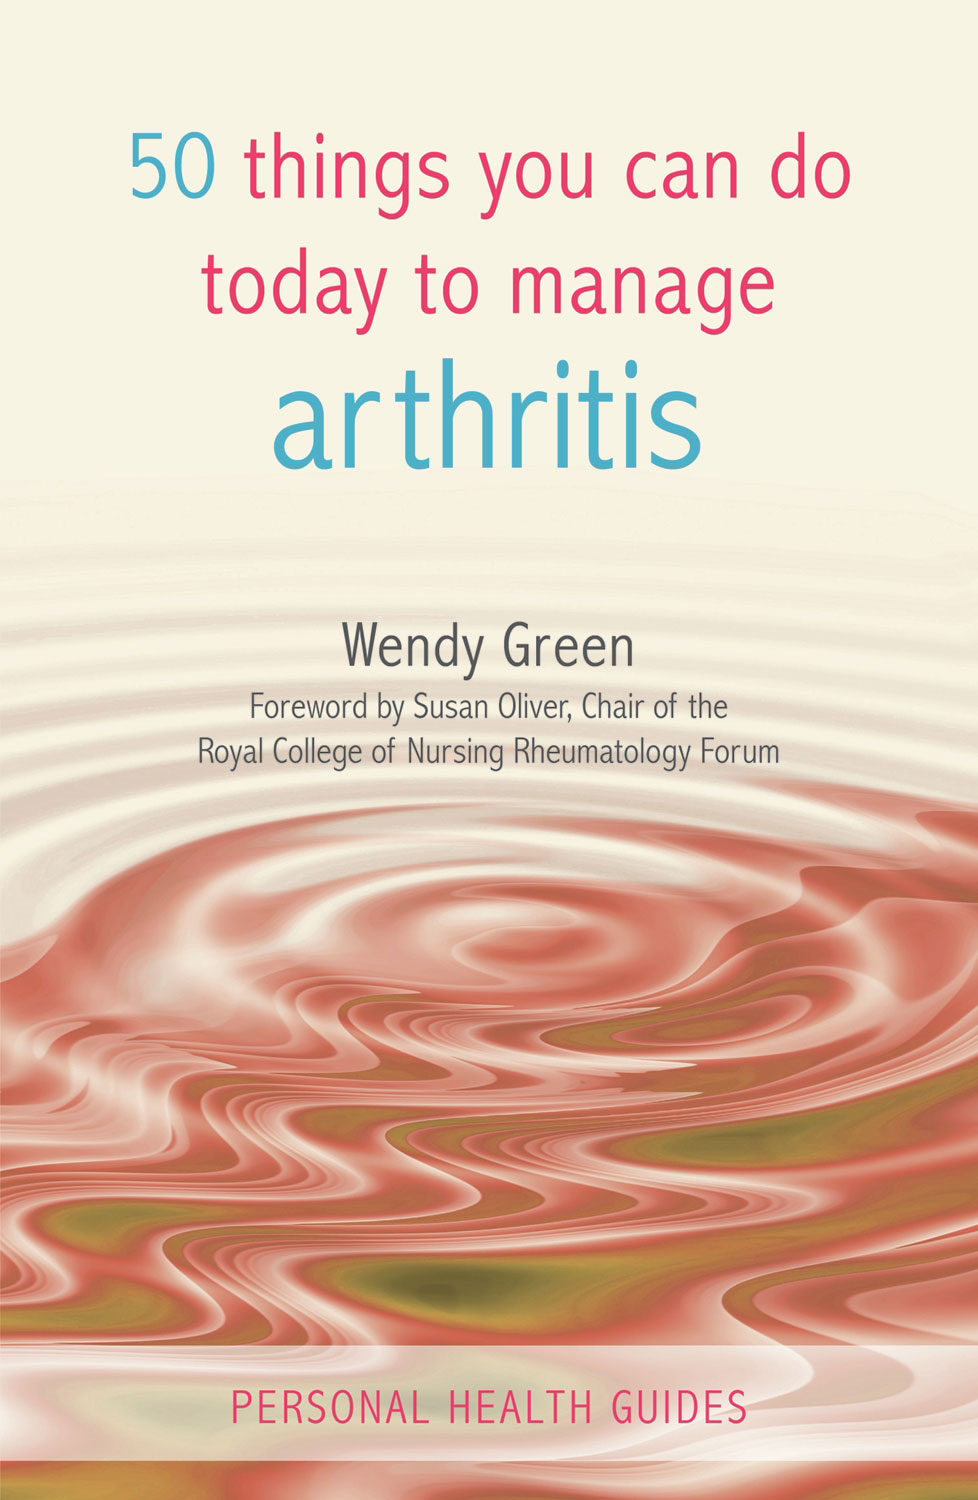 50 Things You Can Do Today to Manage Arthritis By: Wendy Green